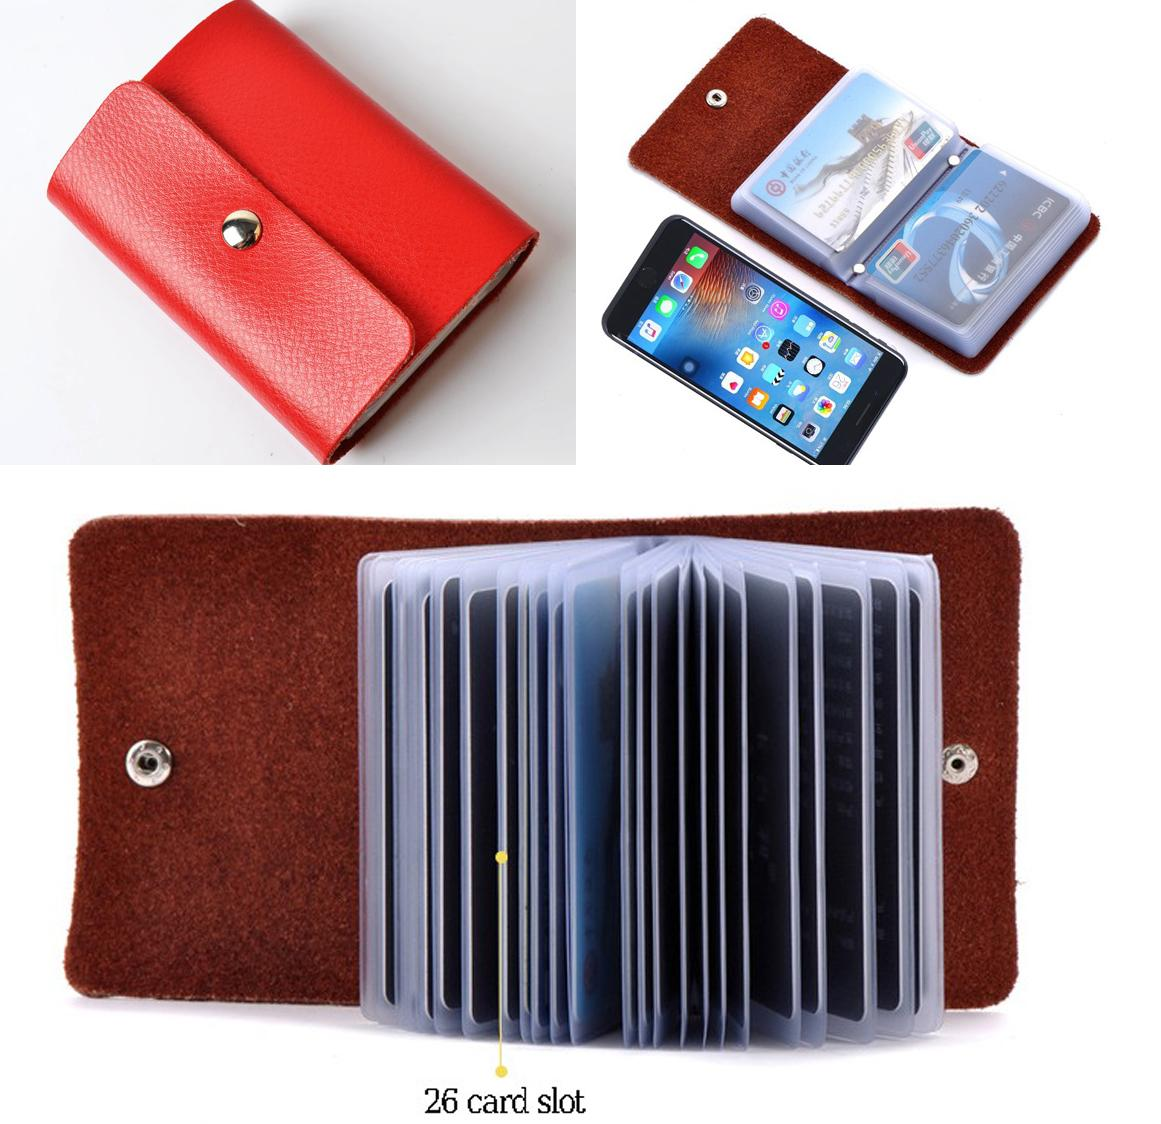 Unisex card holders for sale unisex travel card holders online leather card holder 26 slots id credit card case organizer leather card holder case wallet business reheart Gallery